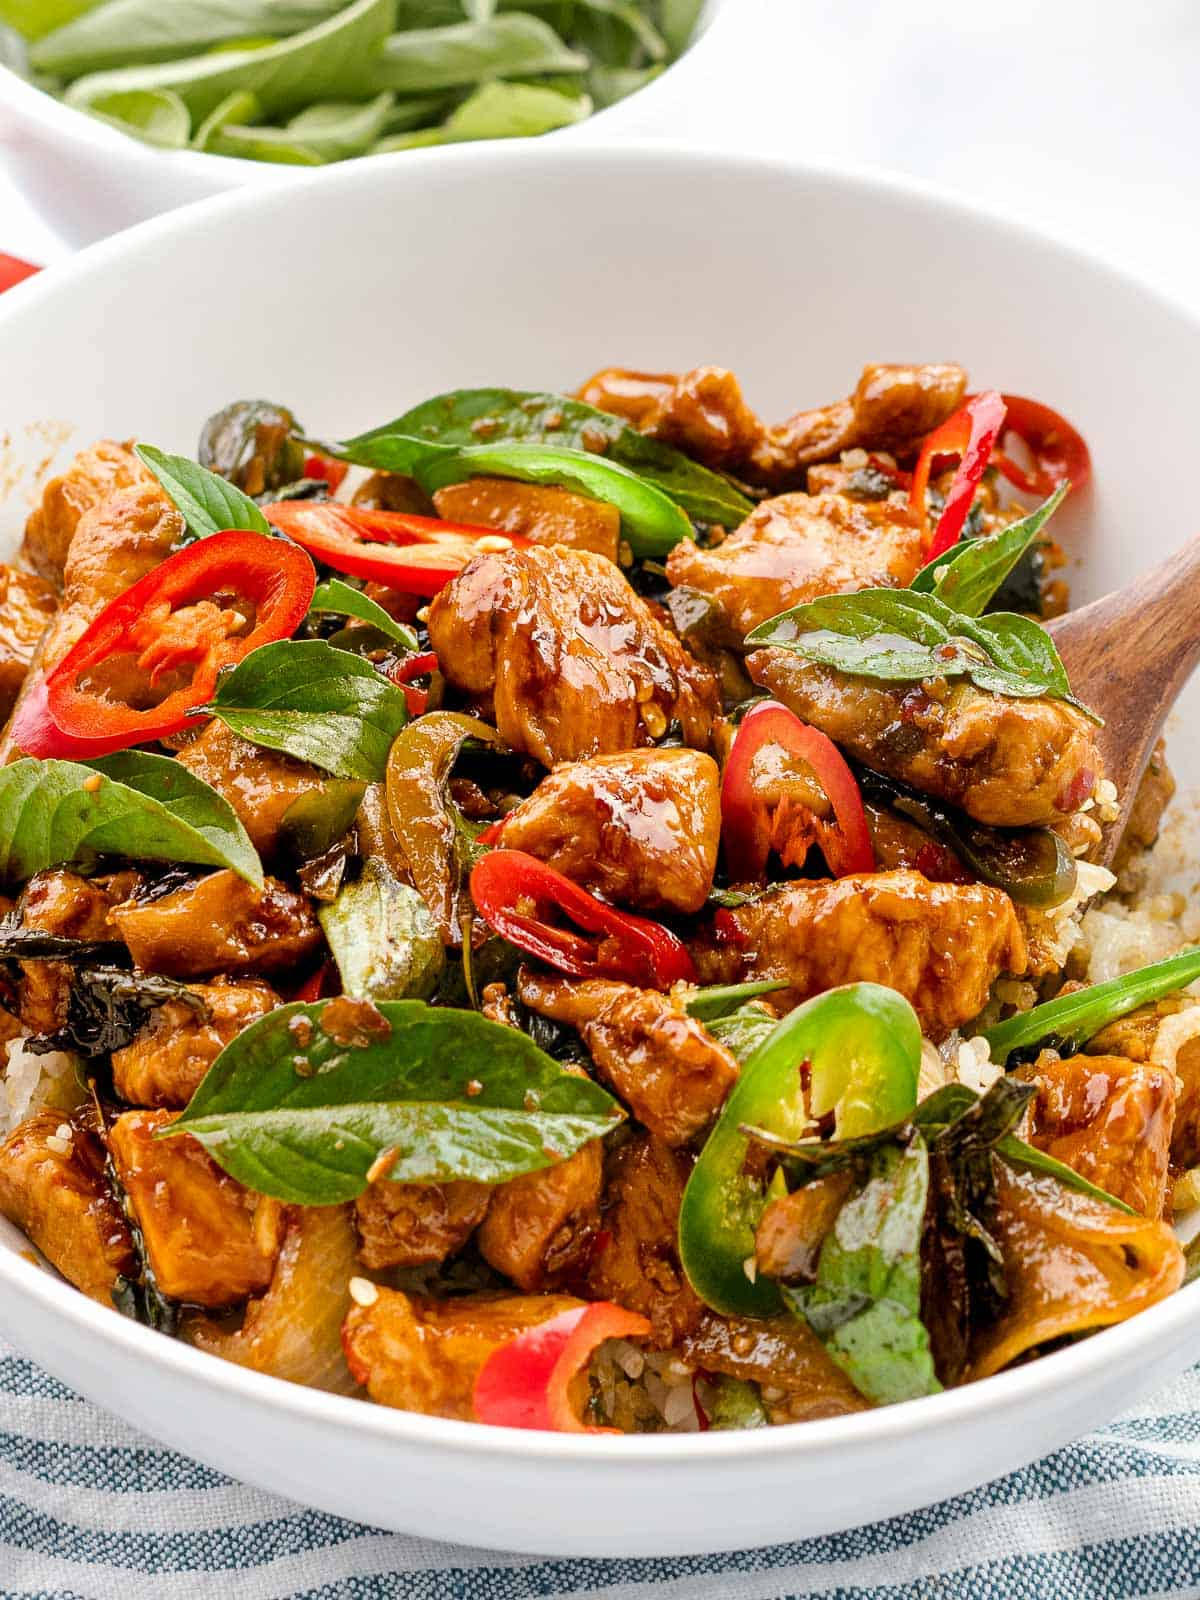 Thai basil chicken (pad krapow gai) with fresh basil leaves and red pepper slices.